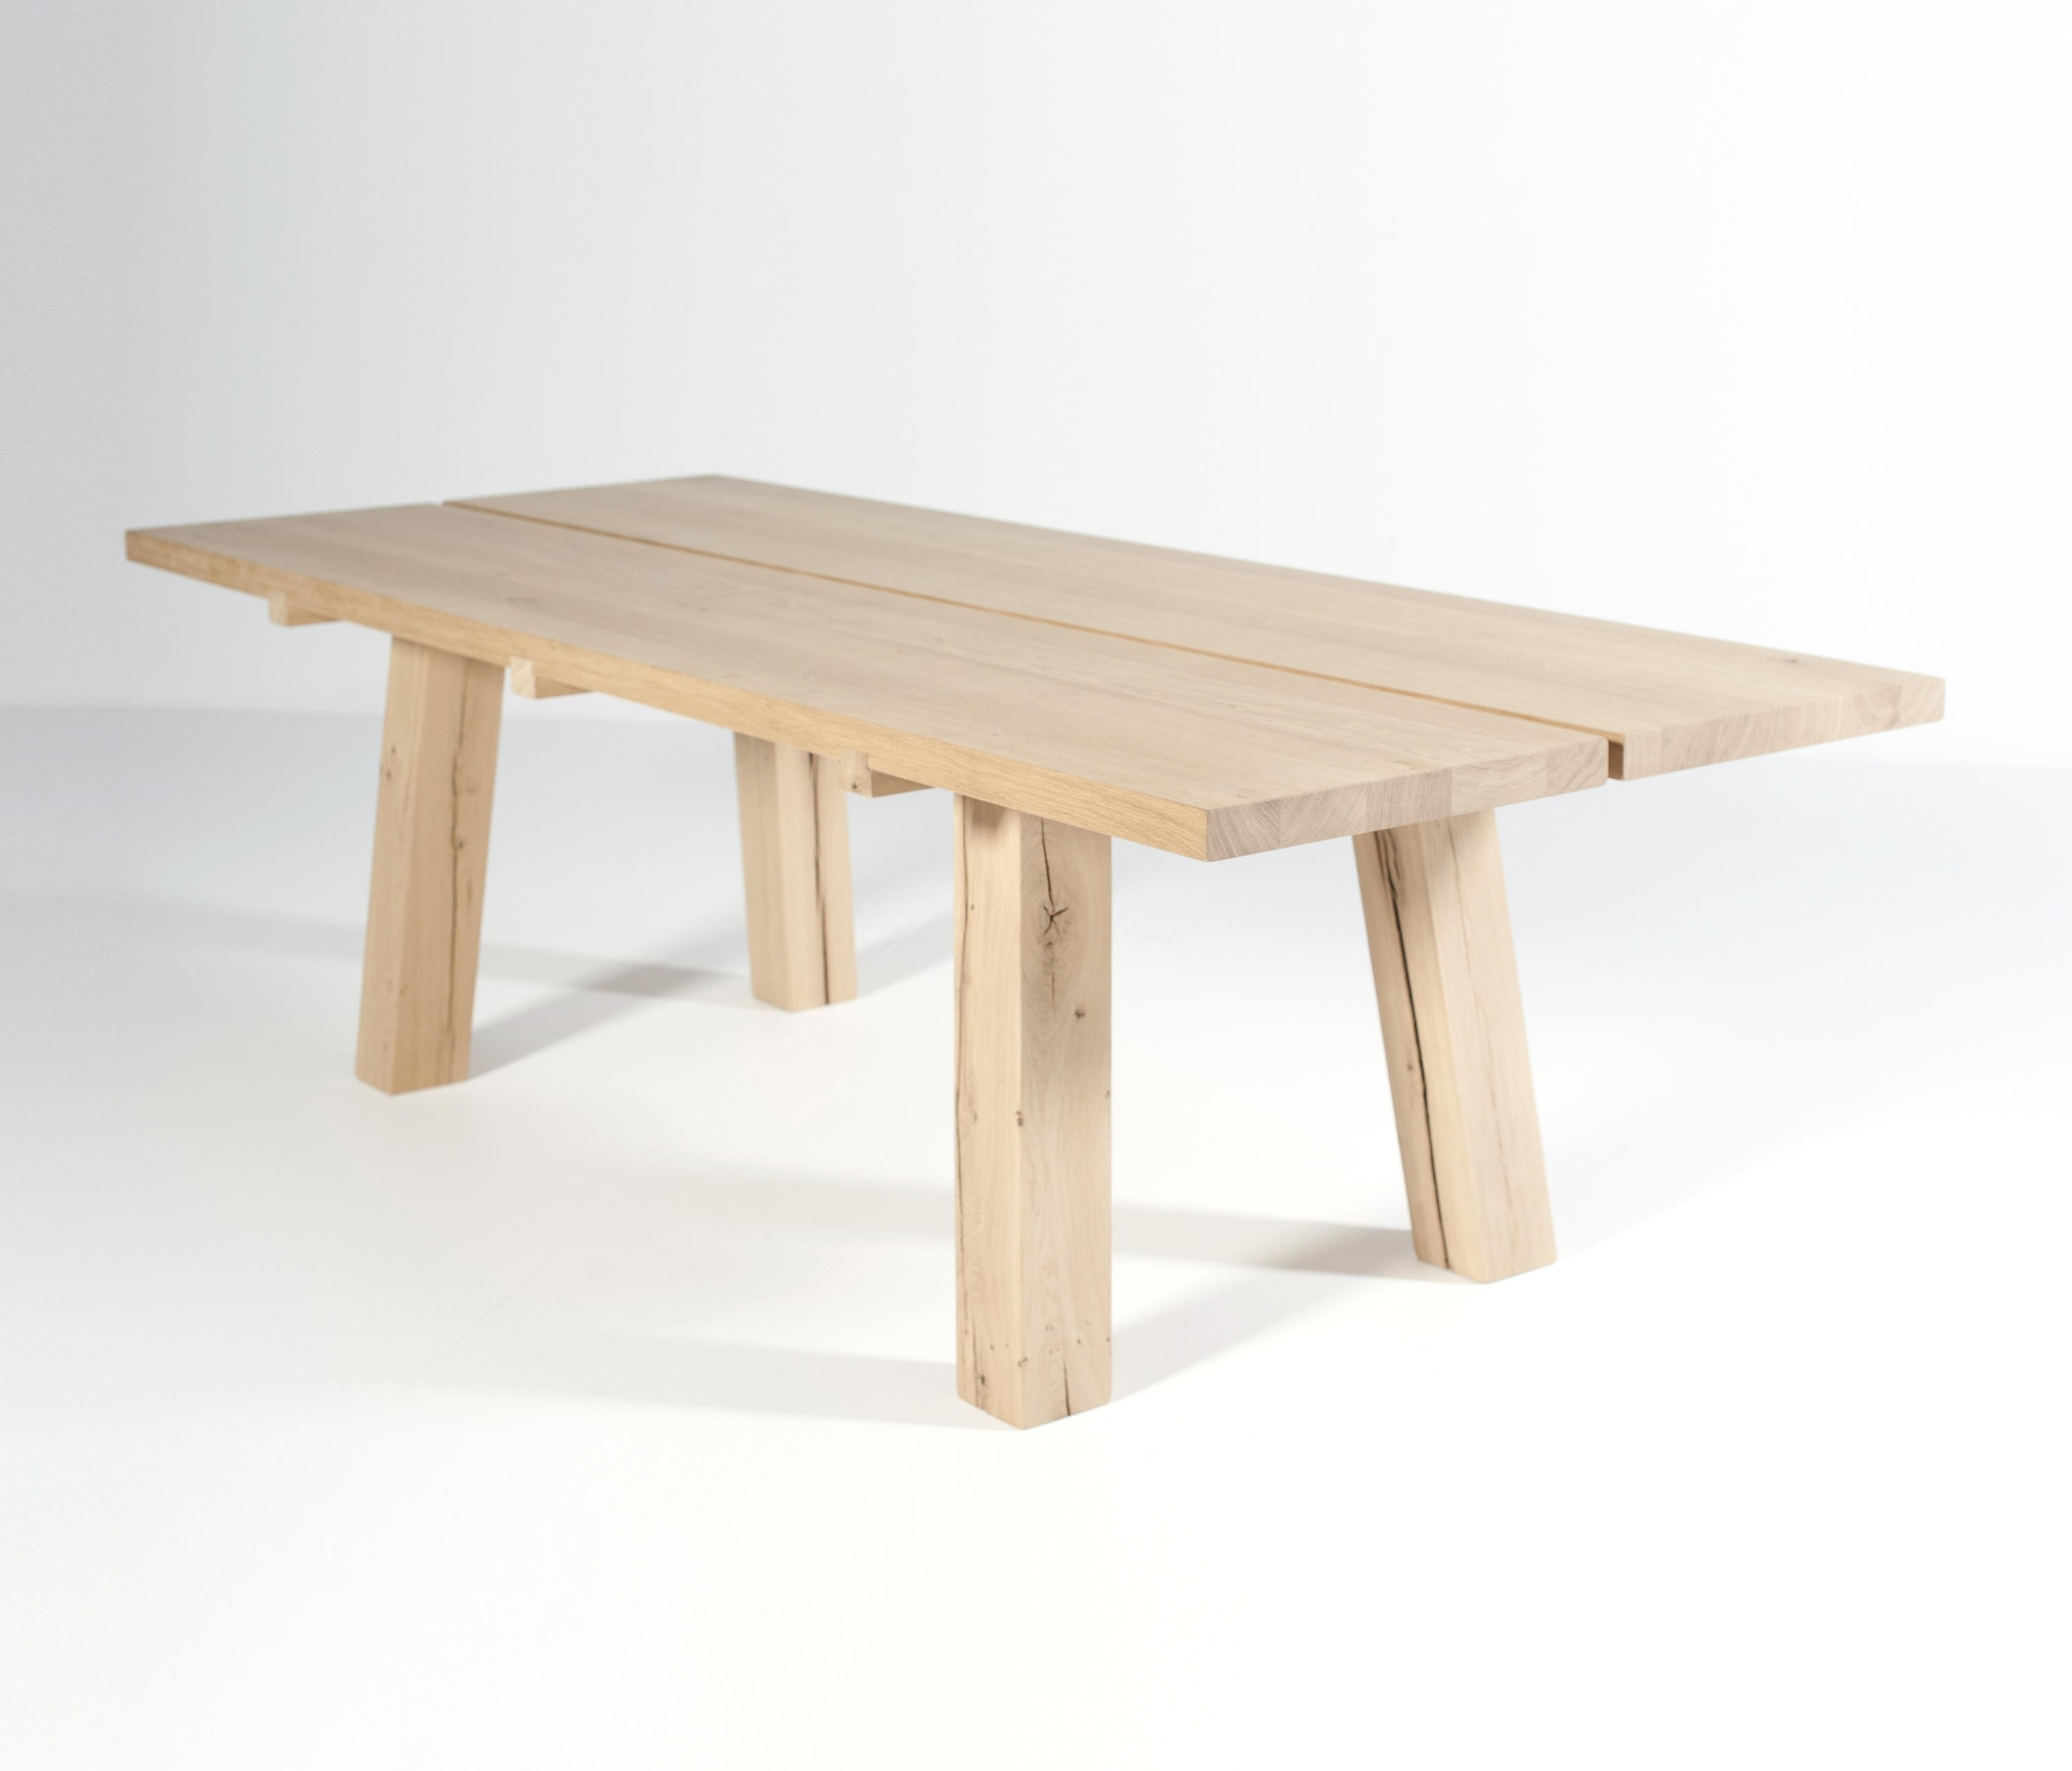 Most Recently Released Square Extendable Dining Tables With Regard To Square Extendable Dining Table New Rustic Solid Oak Extending Dining (View 5 of 25)